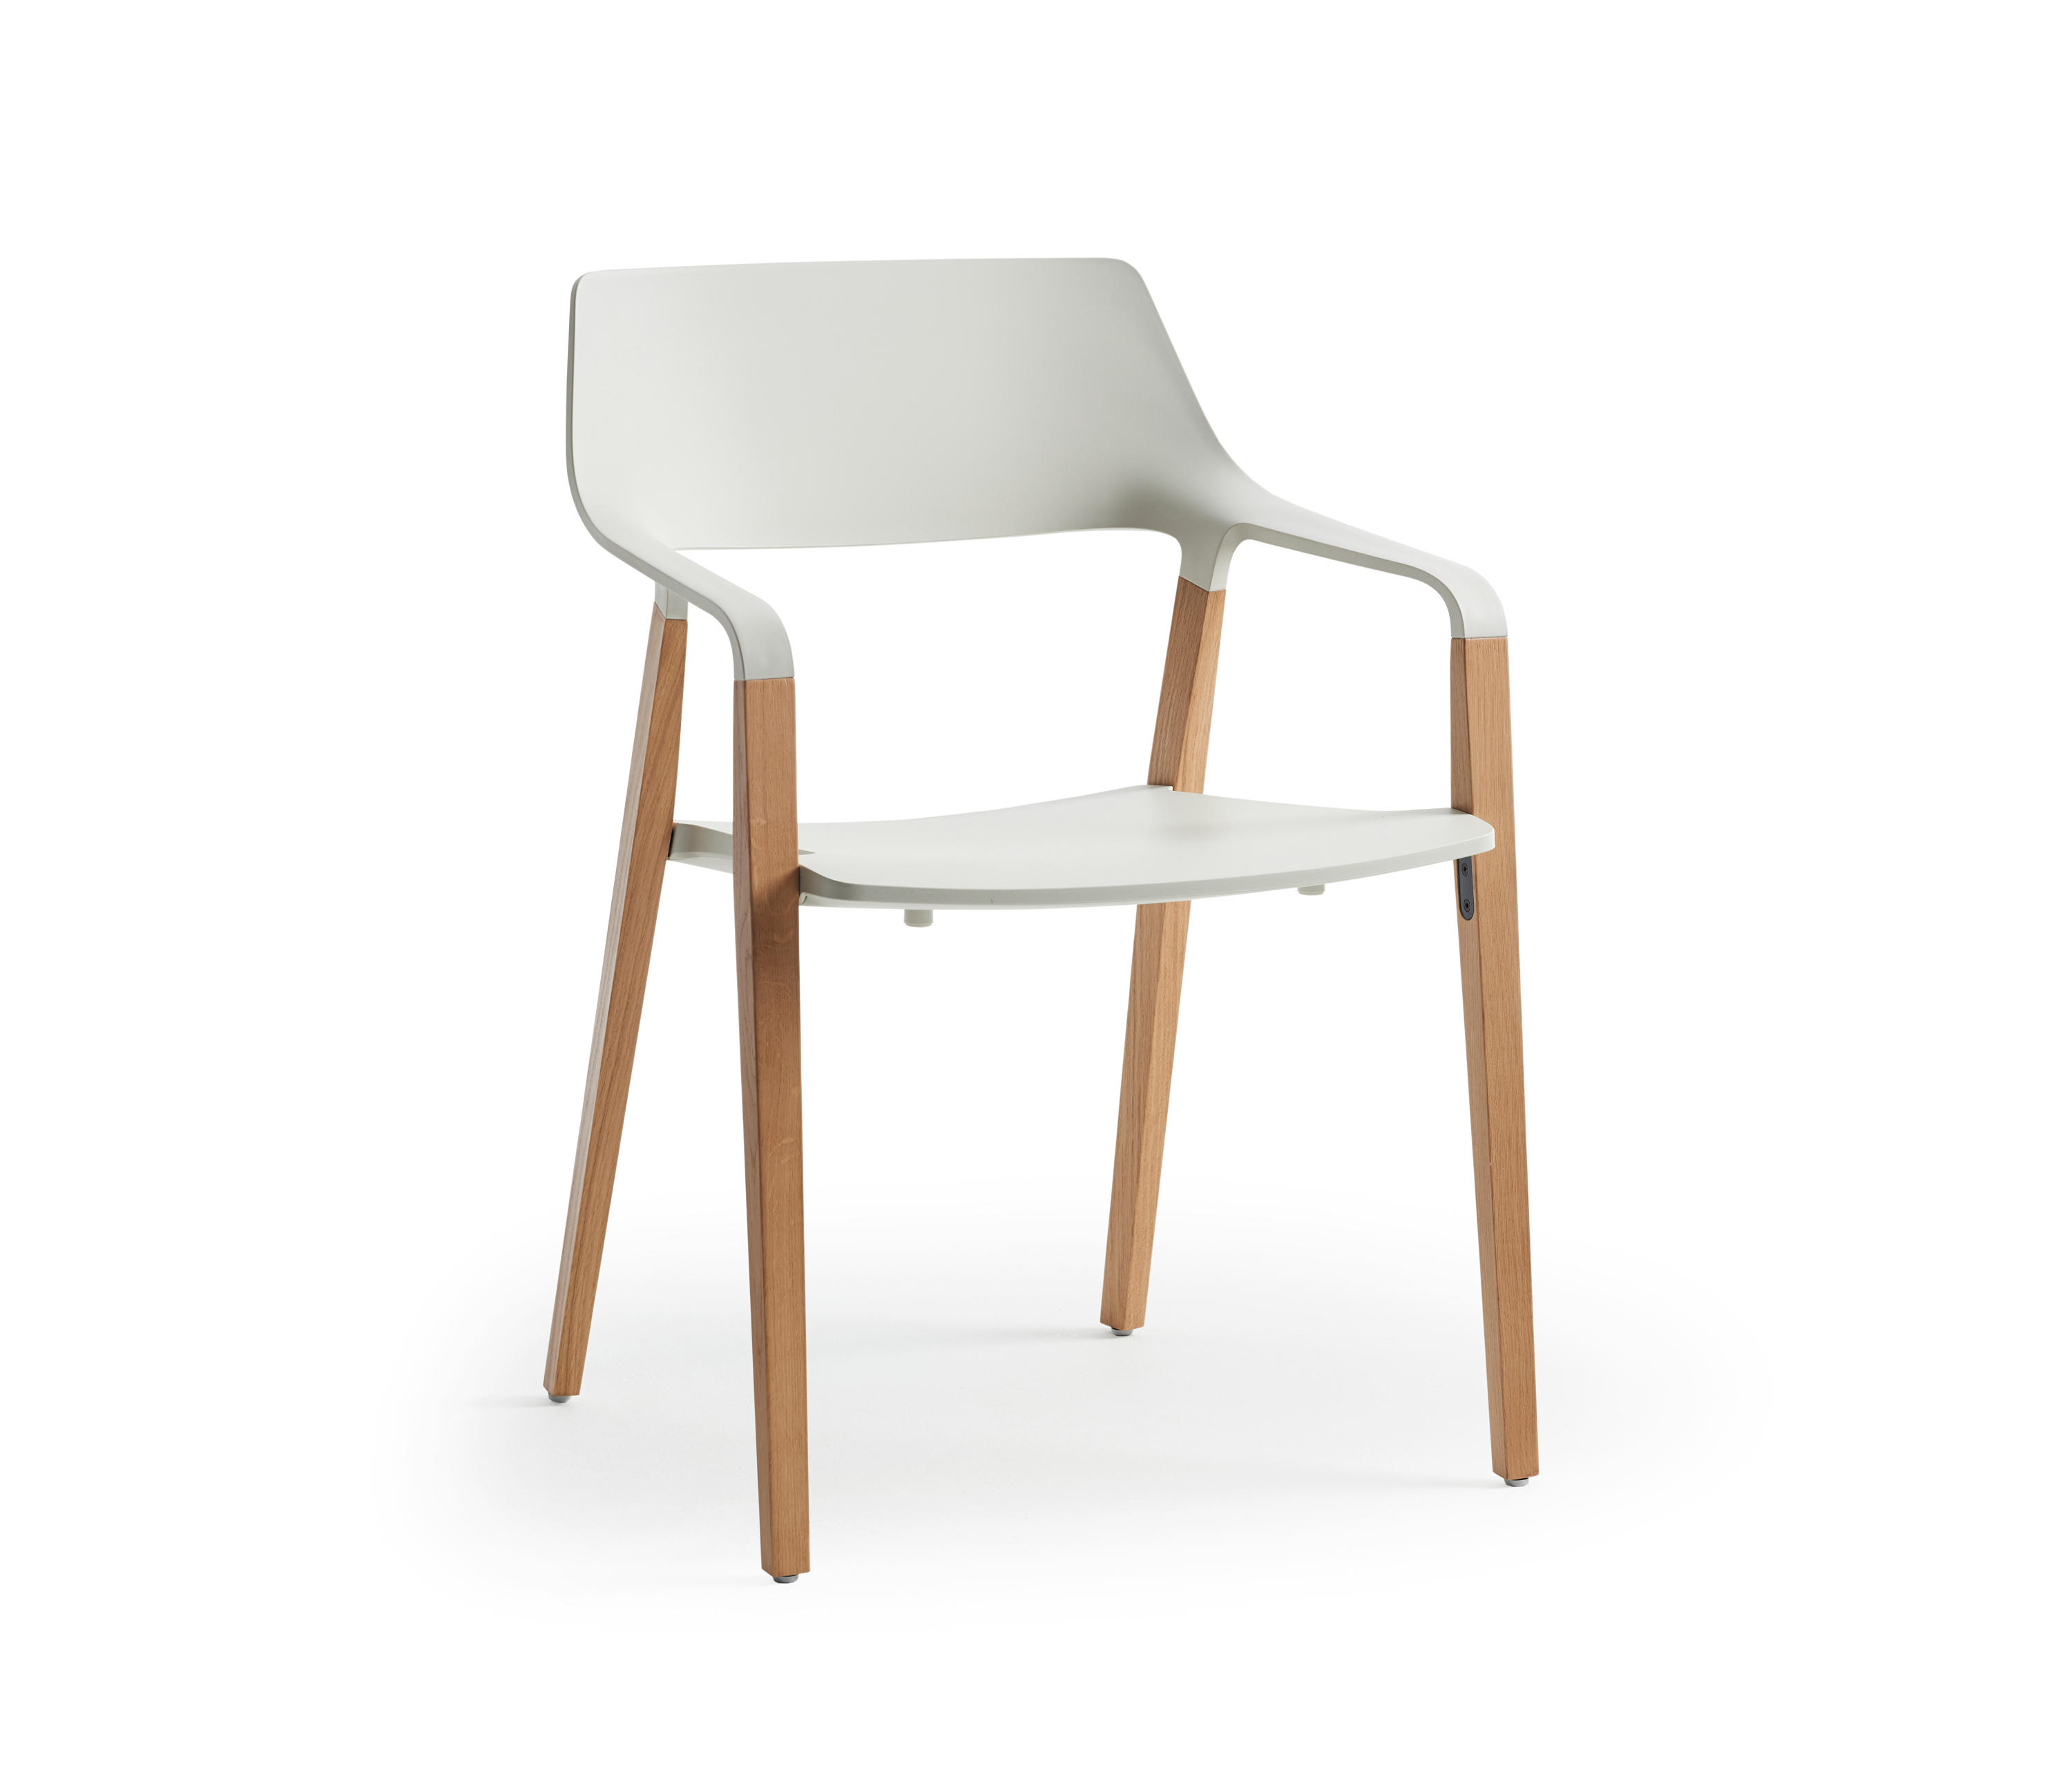 REED - Chairs from Davis Furniture | Architonic | furniture davis